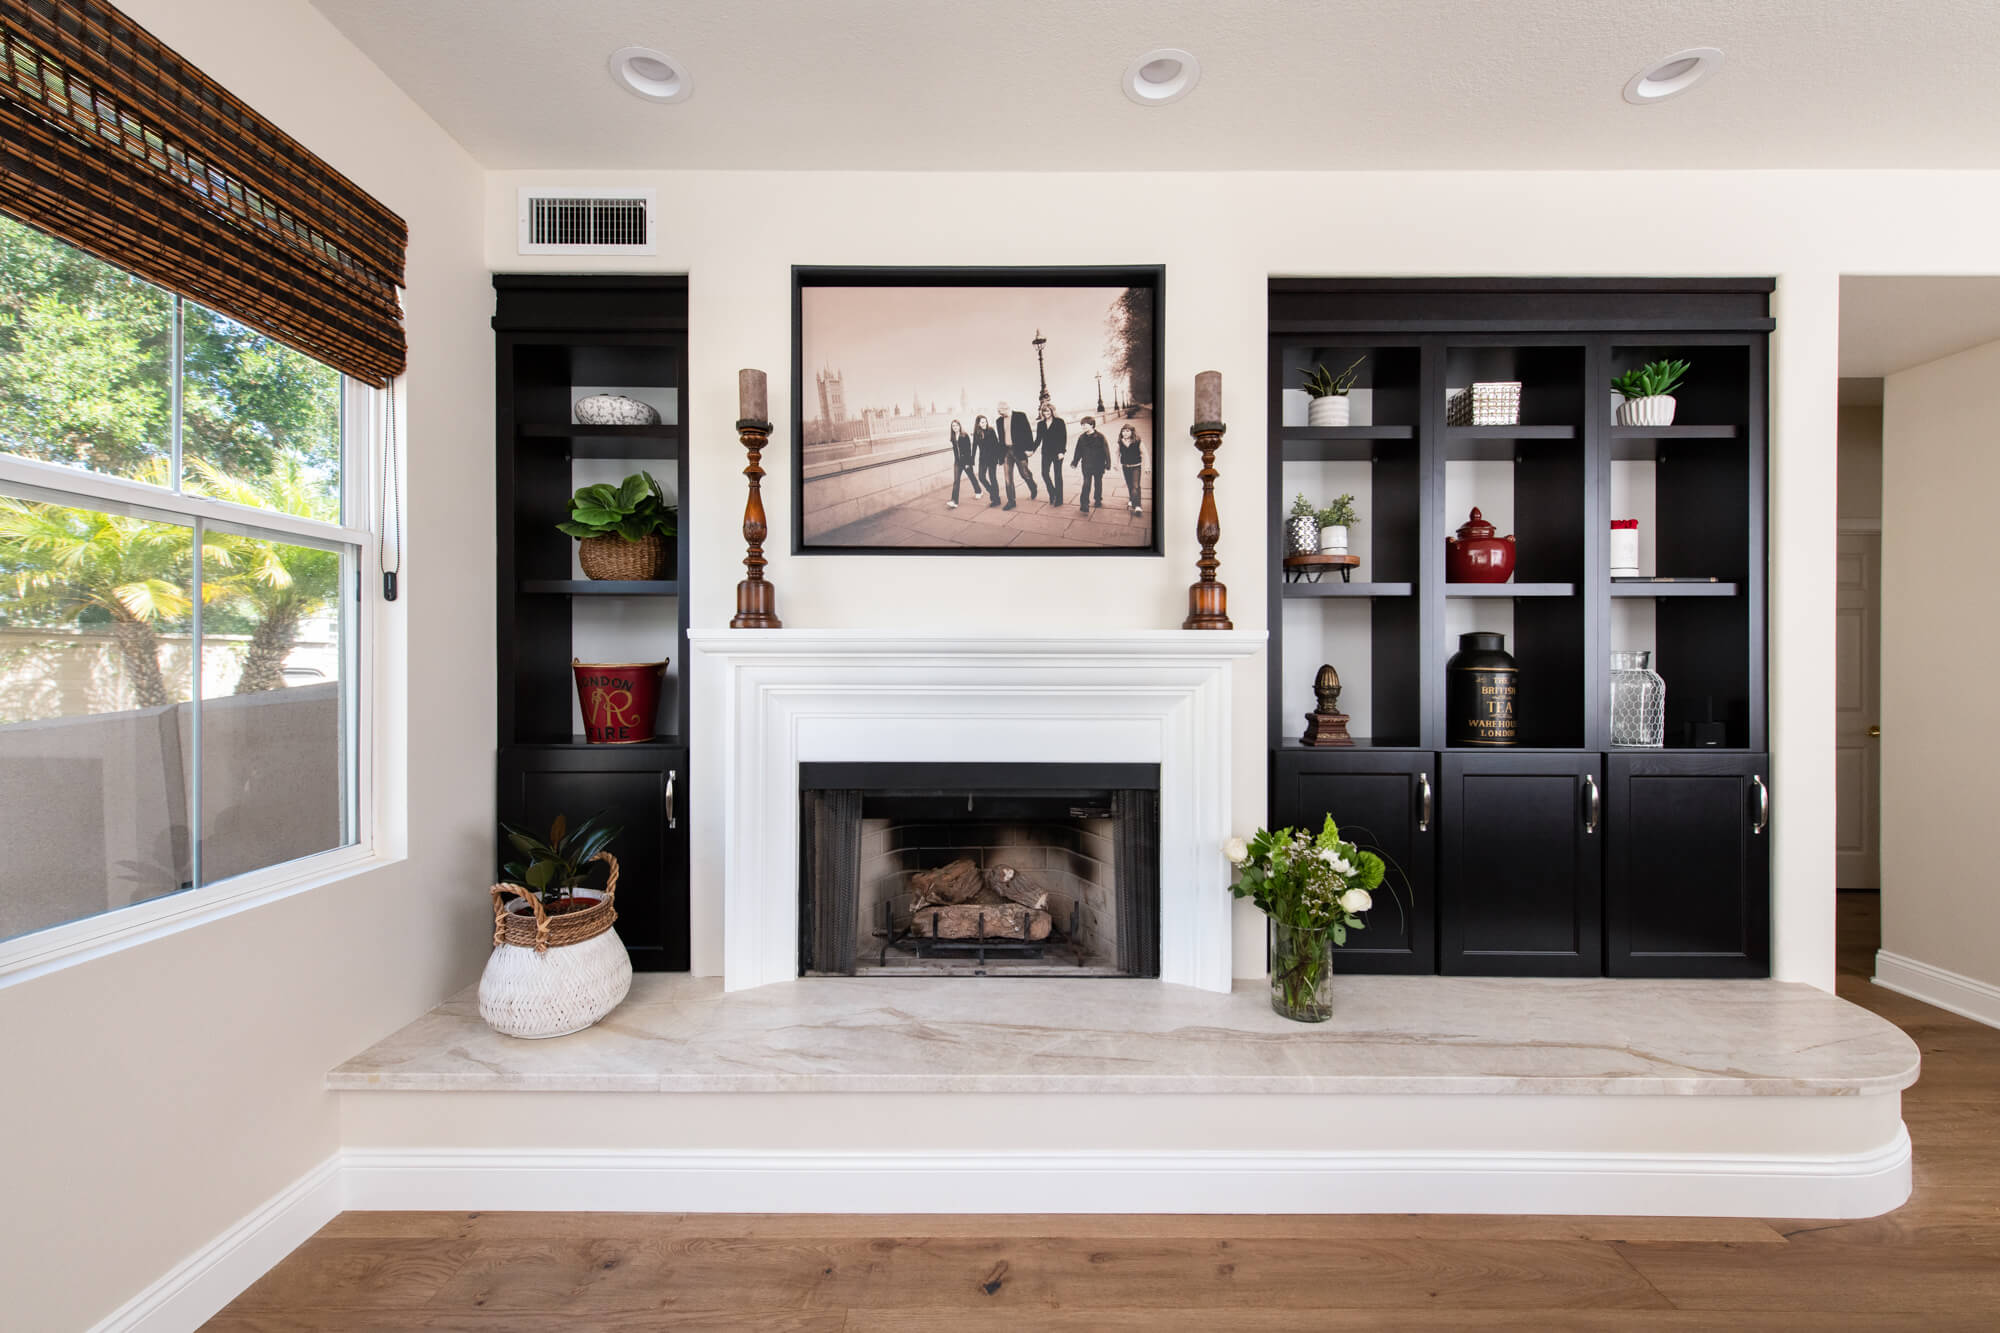 Built-in cabinetry at fireplace